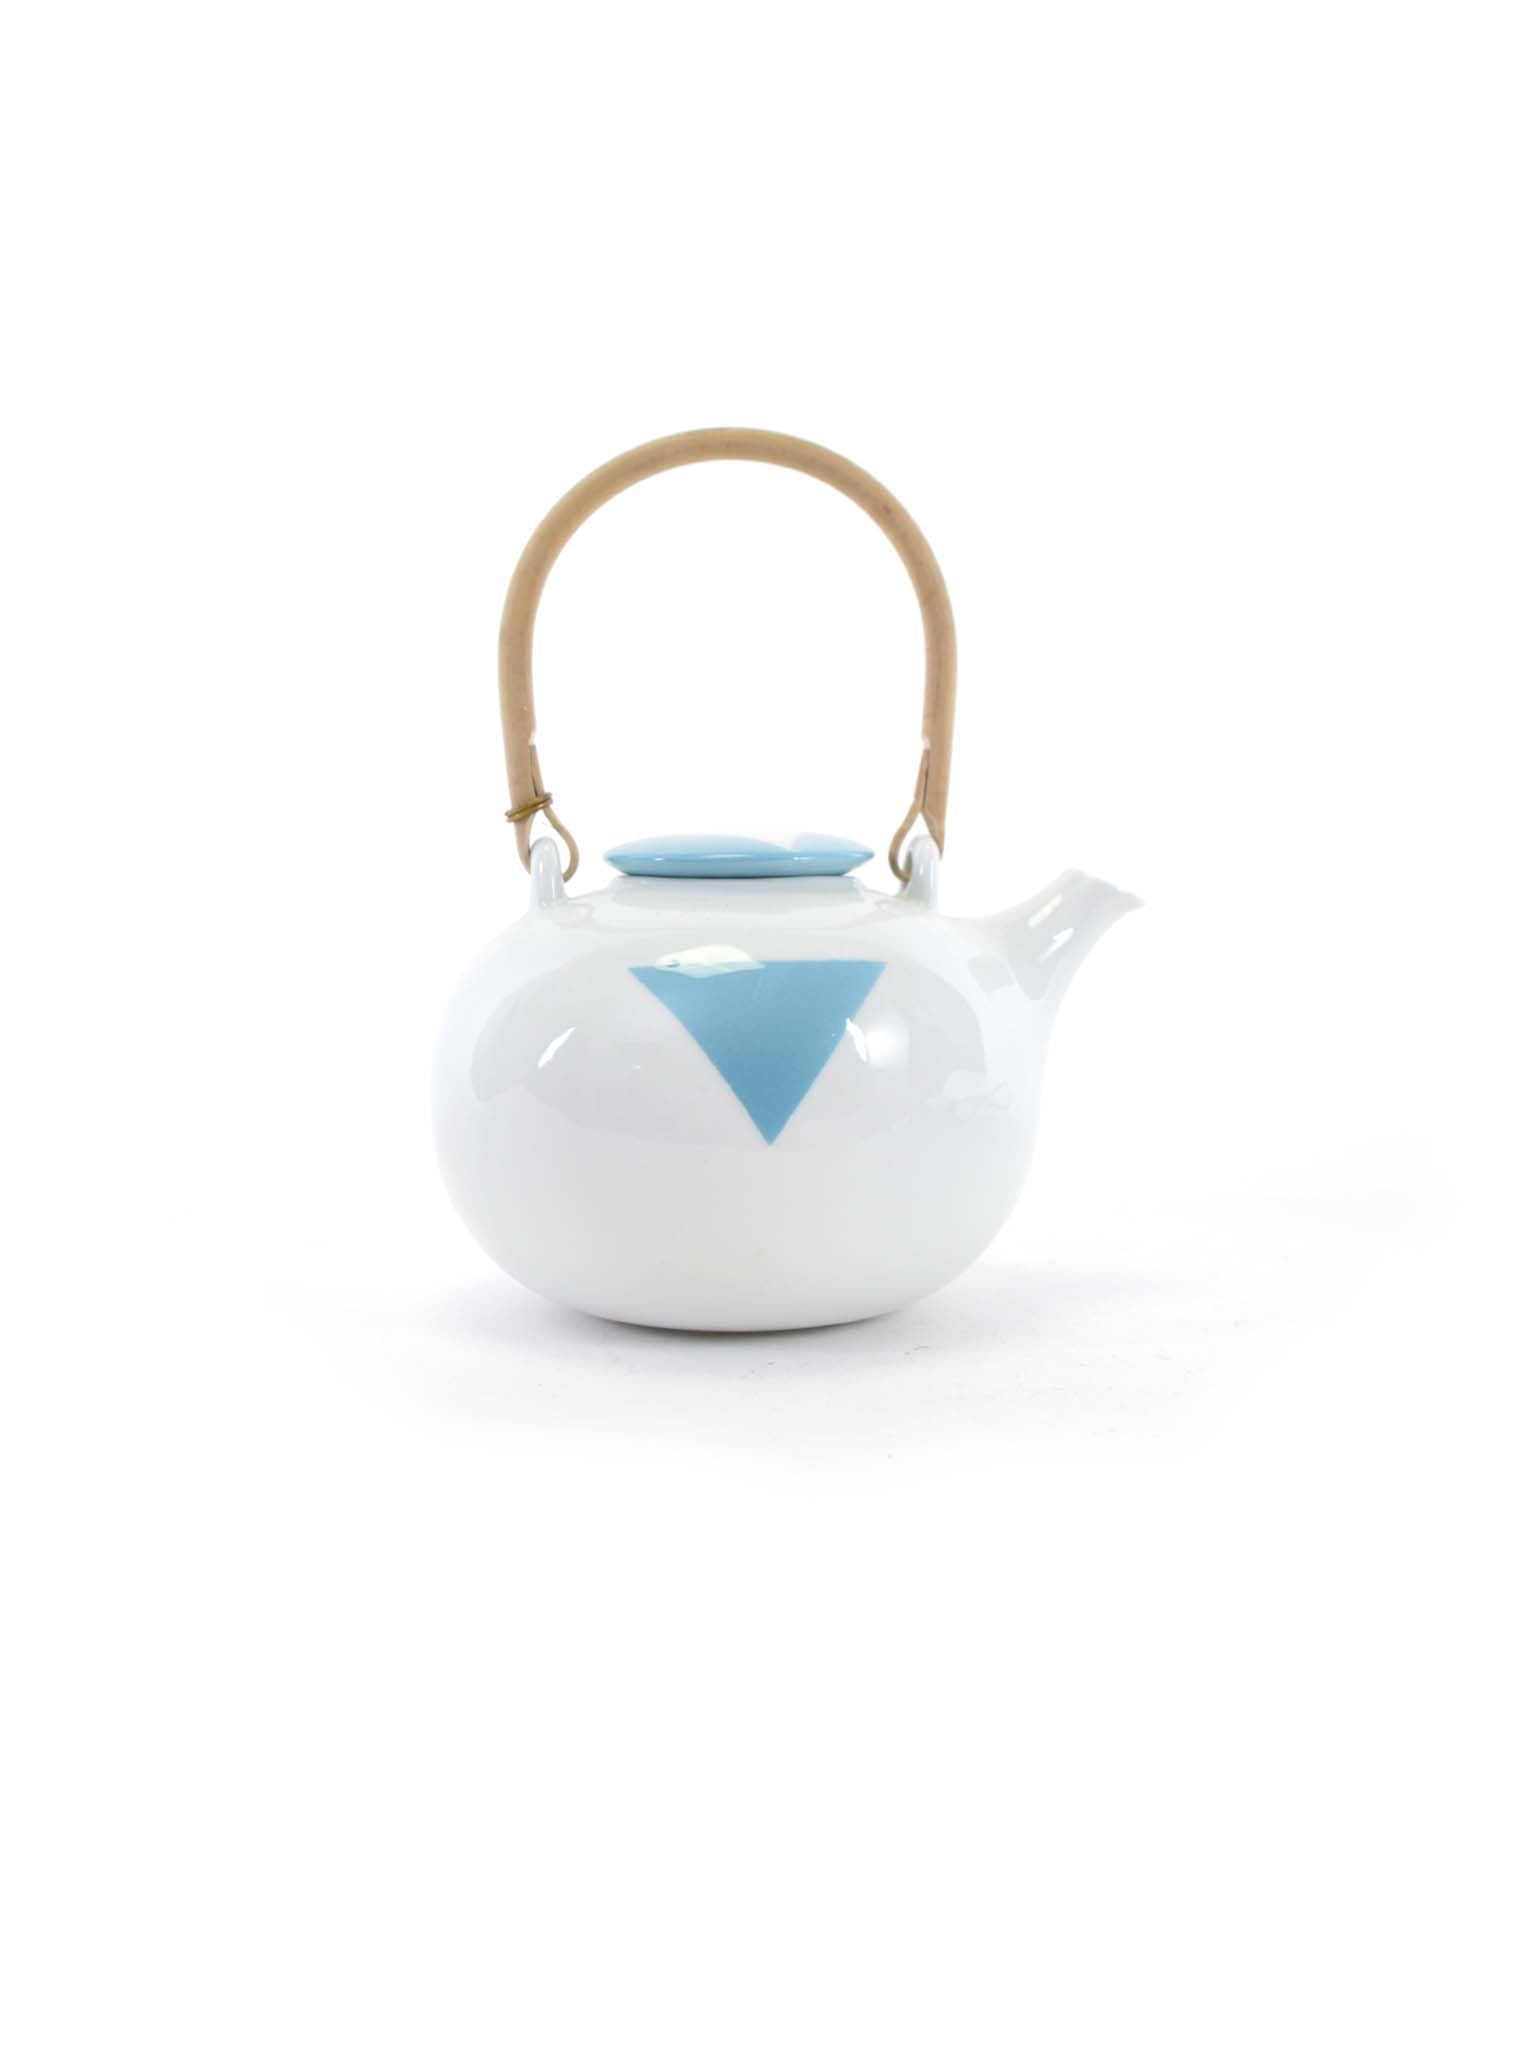 TEAPOT BY INGER PERSSON